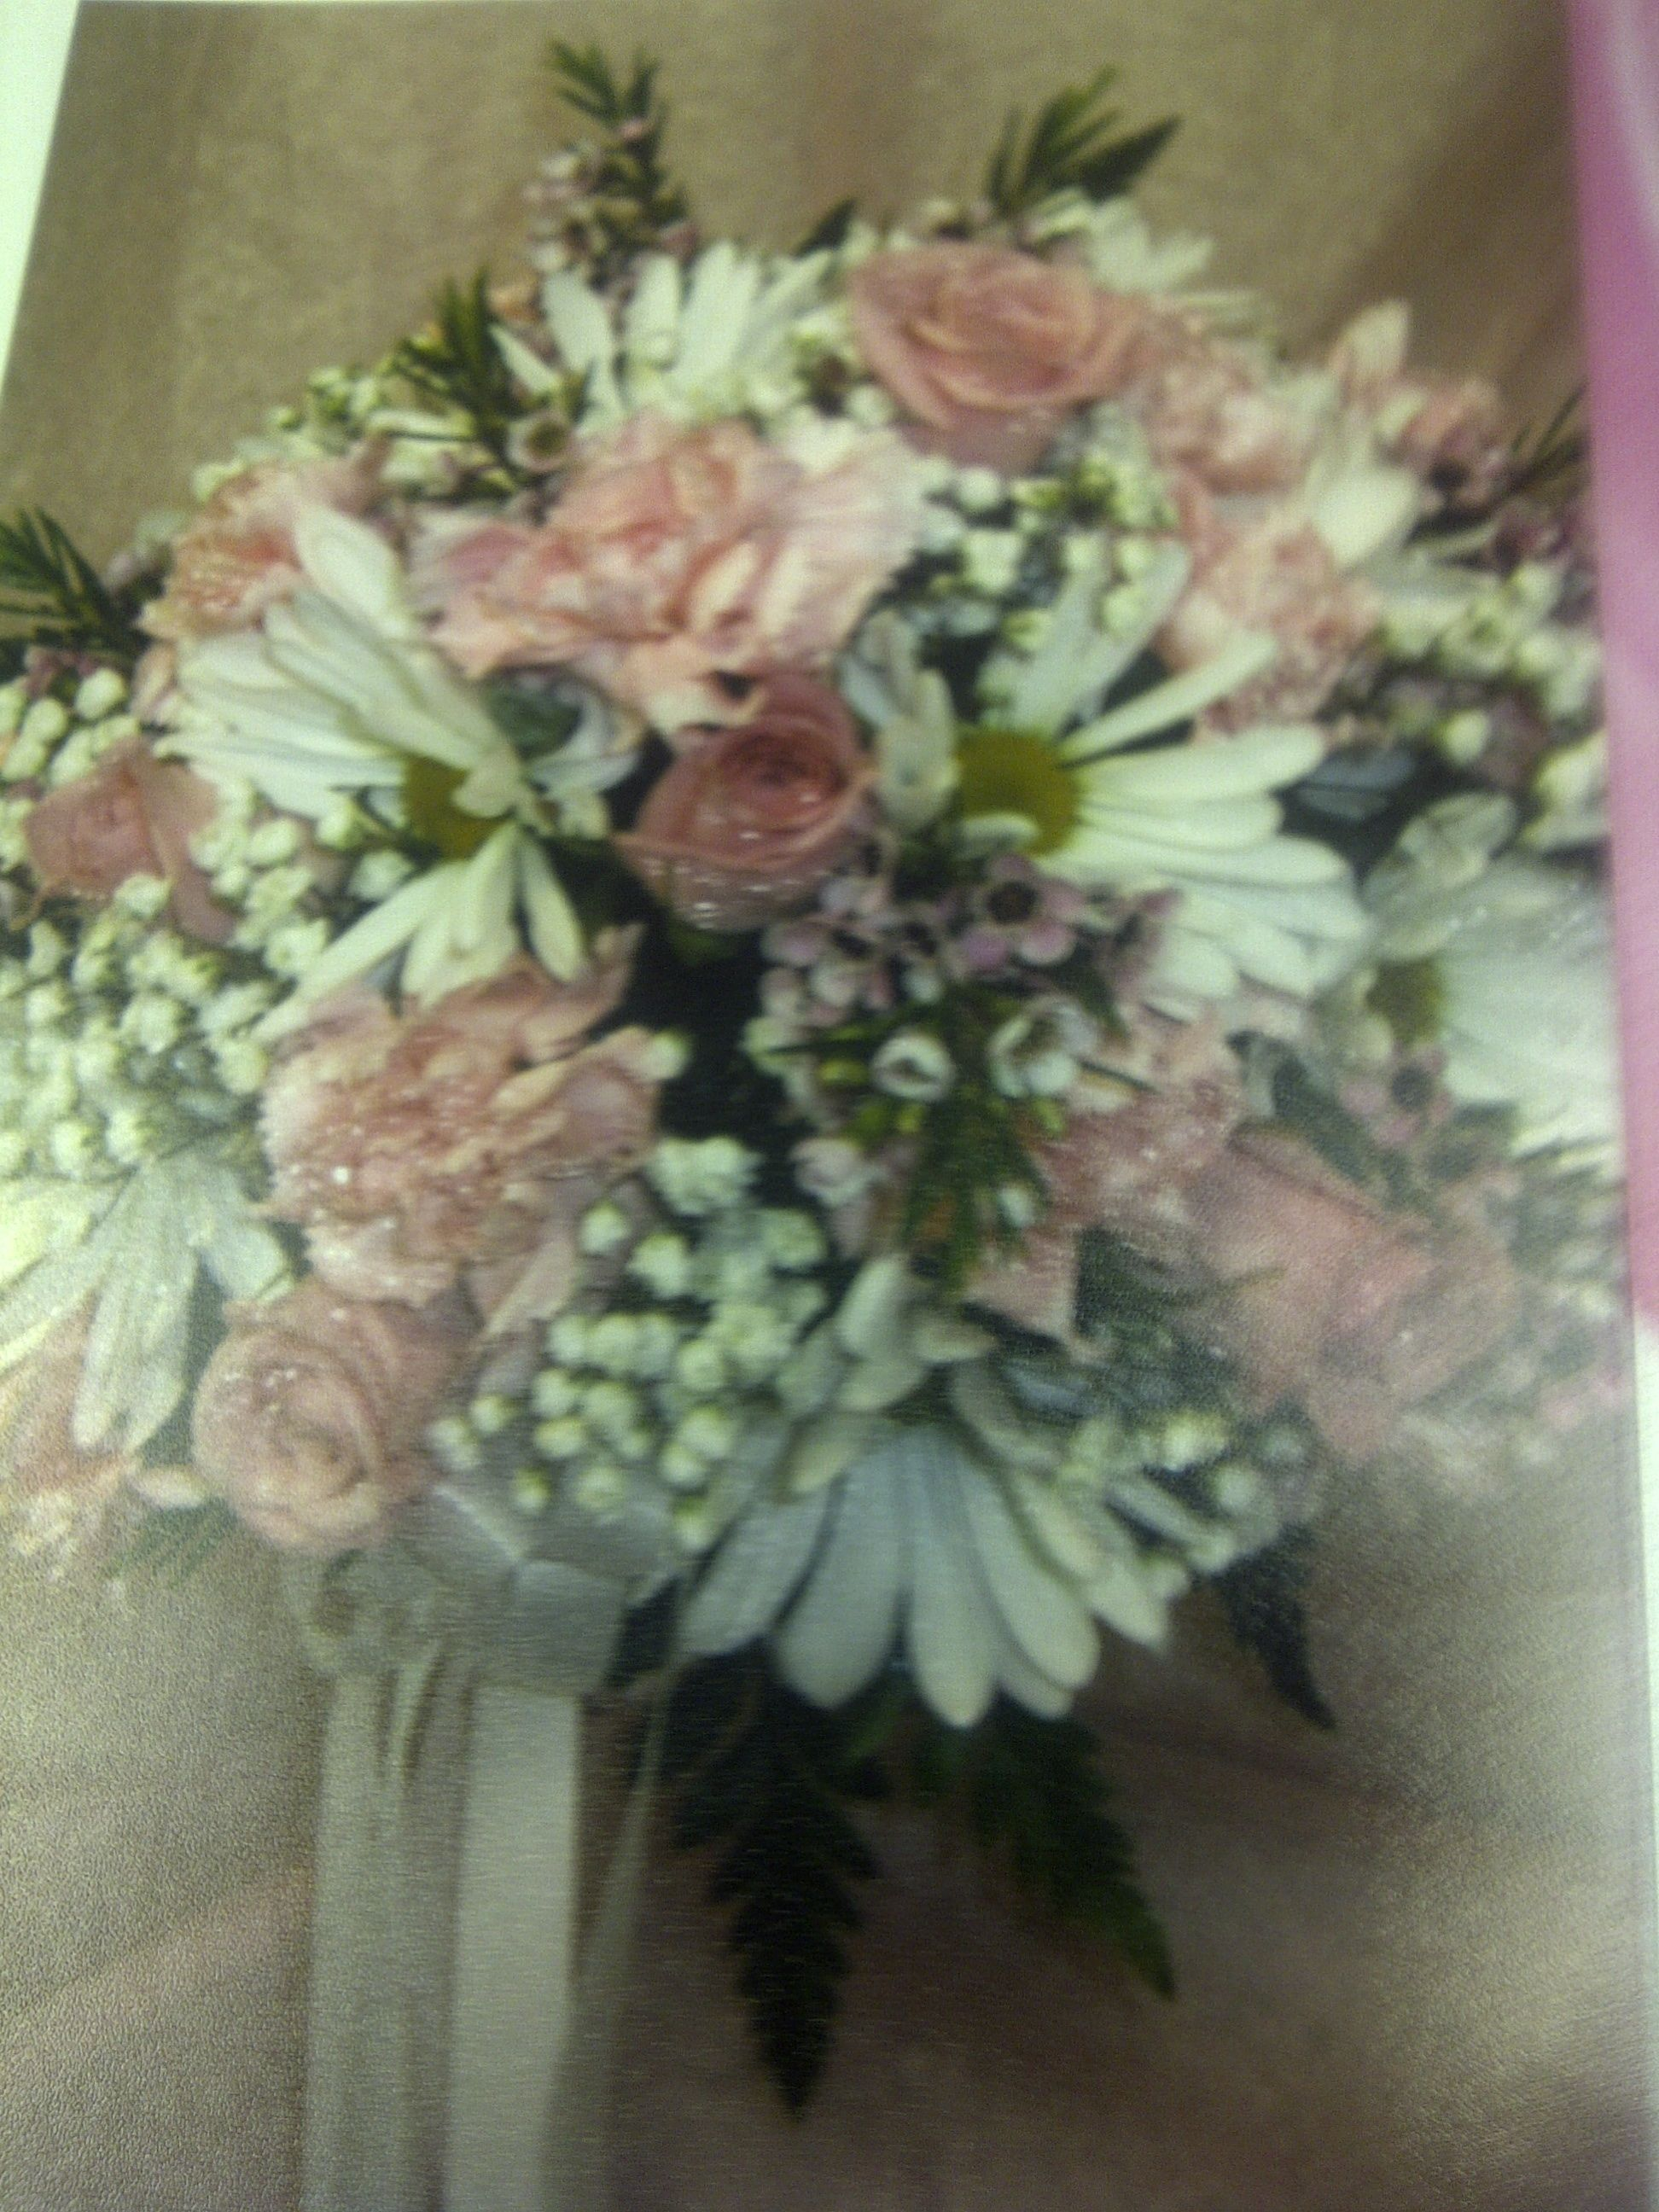 These are the flowers she picked... they are adding some lavender ones too